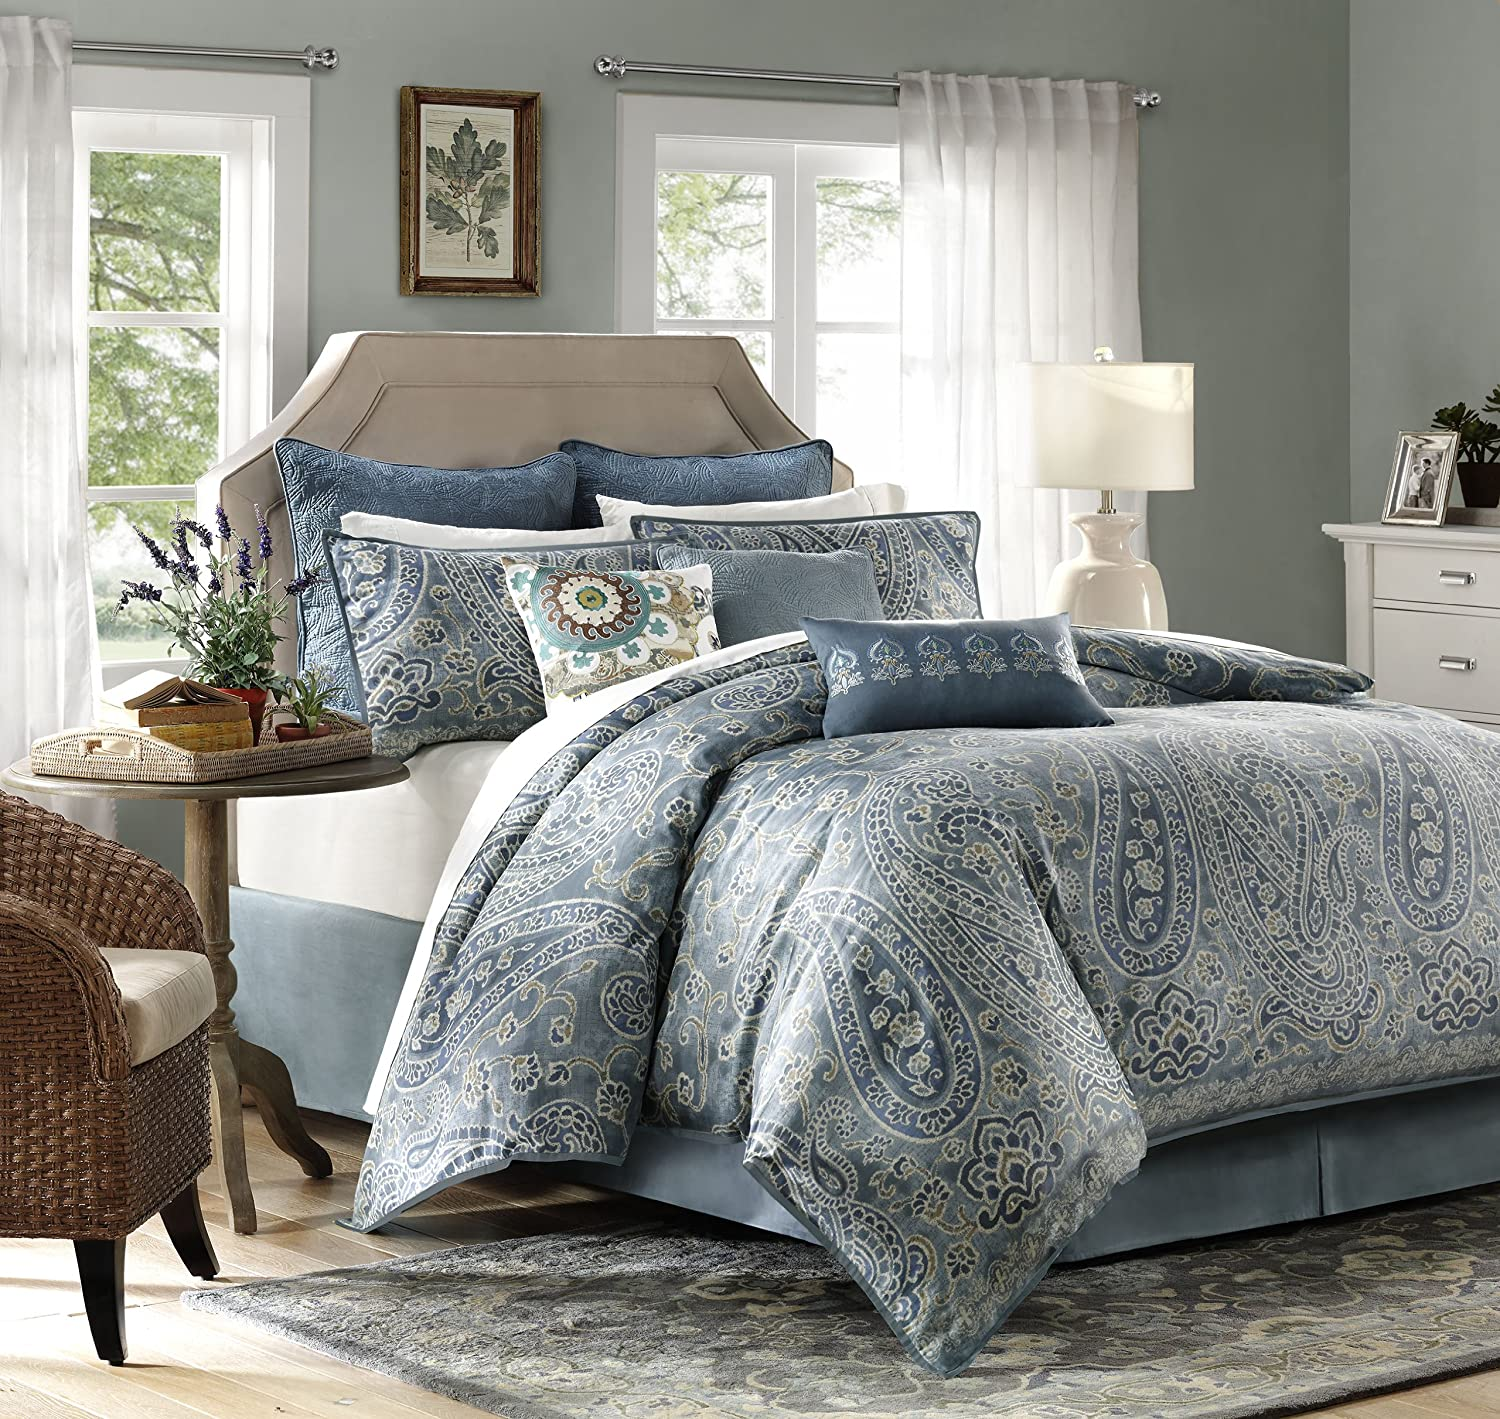 california king bedding -